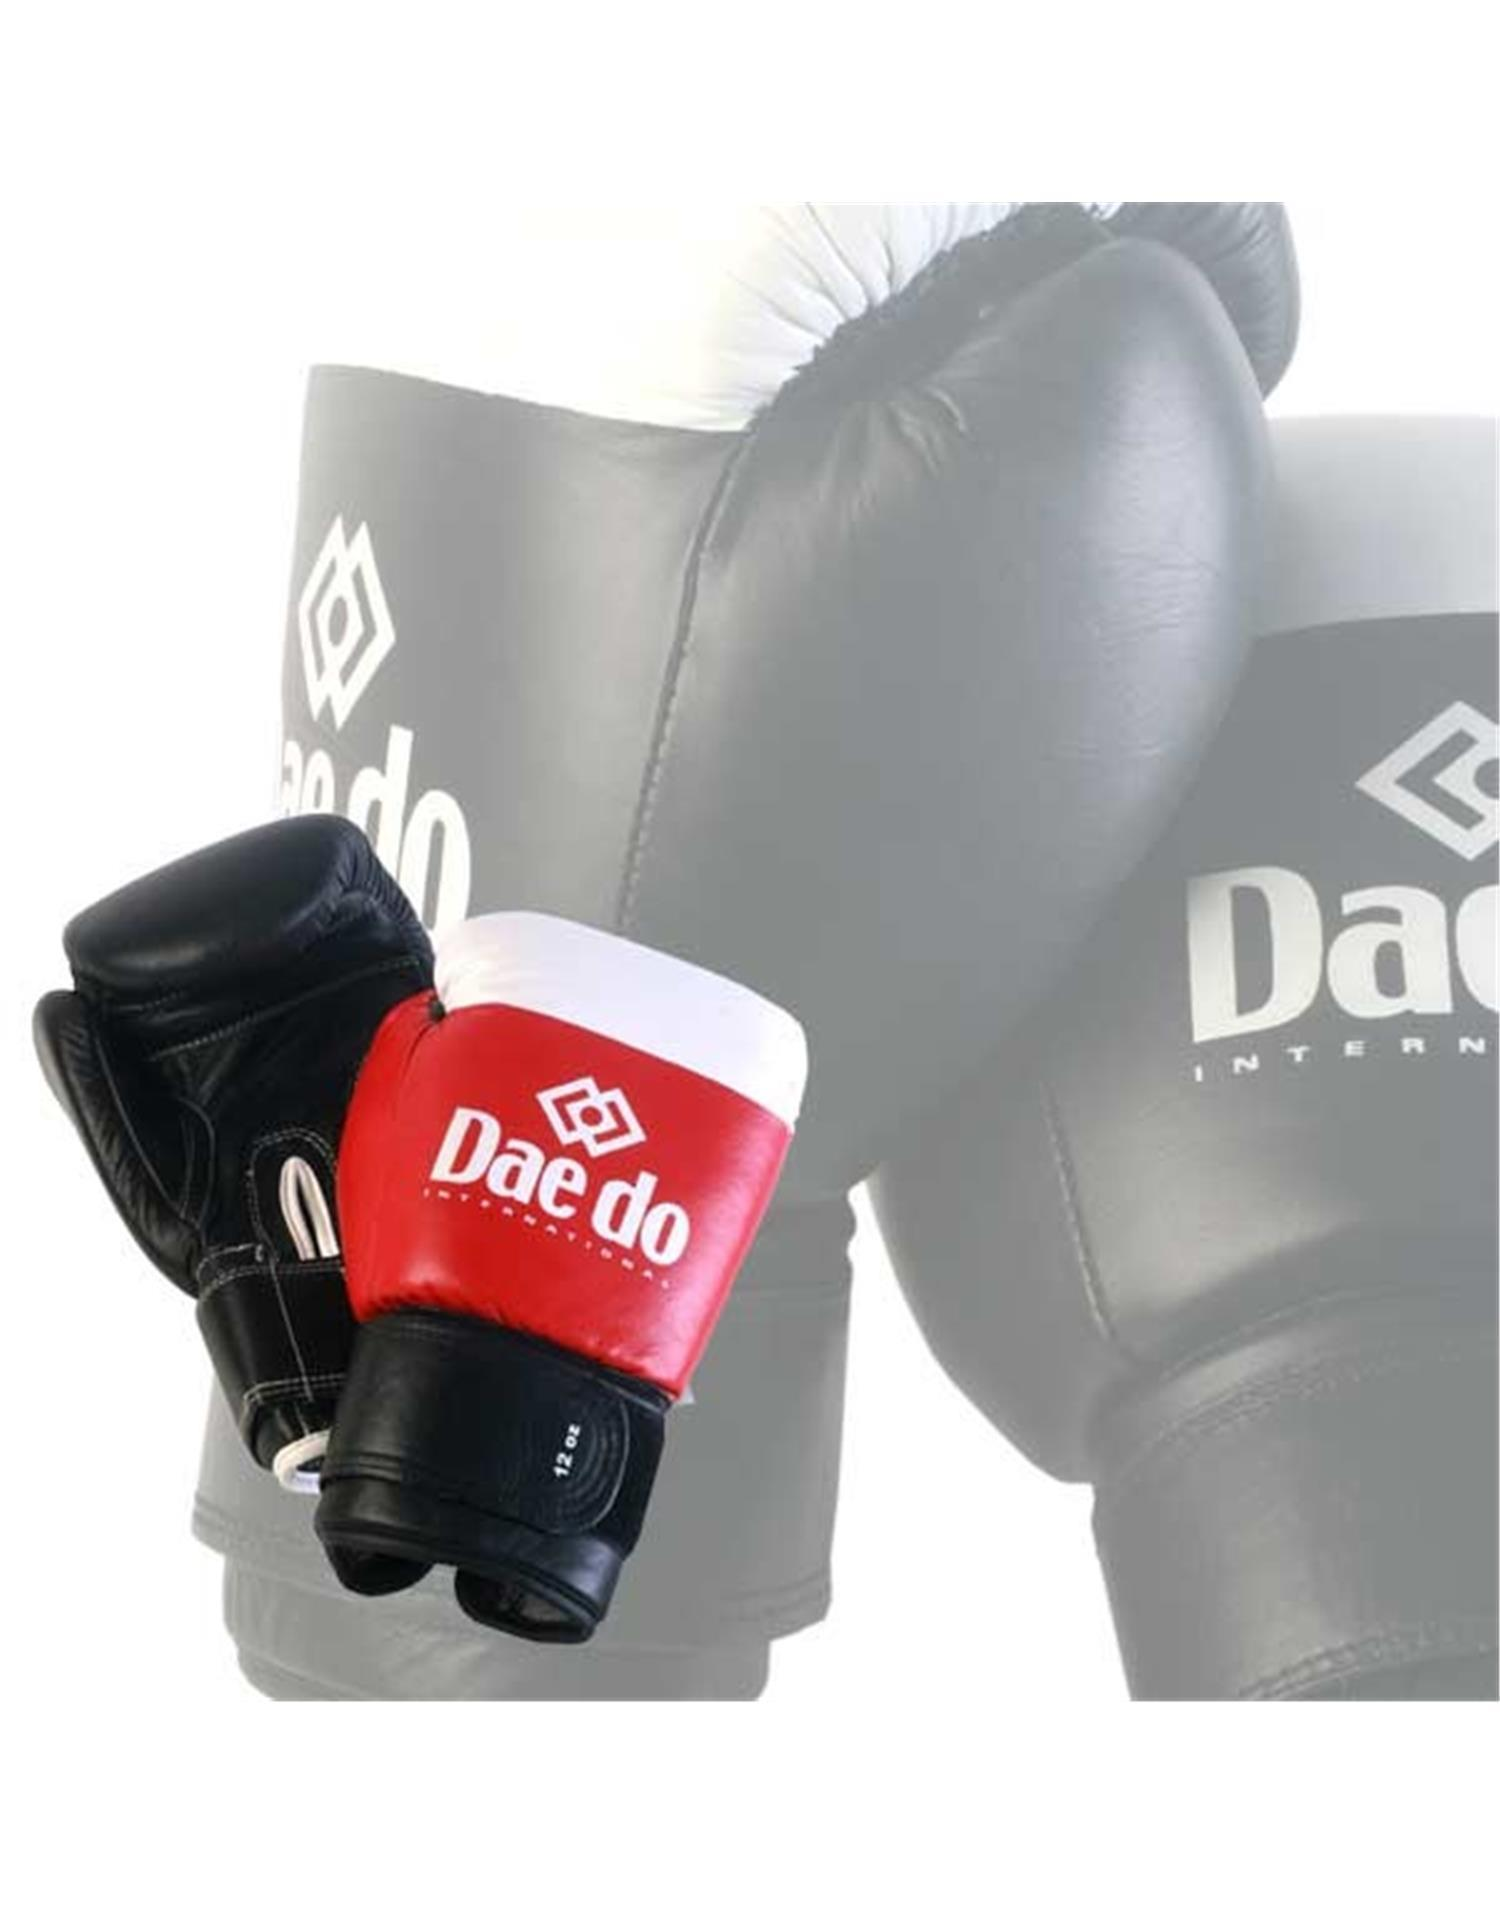 Dae Do Guanti Boxe multi Dae do Nero Bianco 10-oz